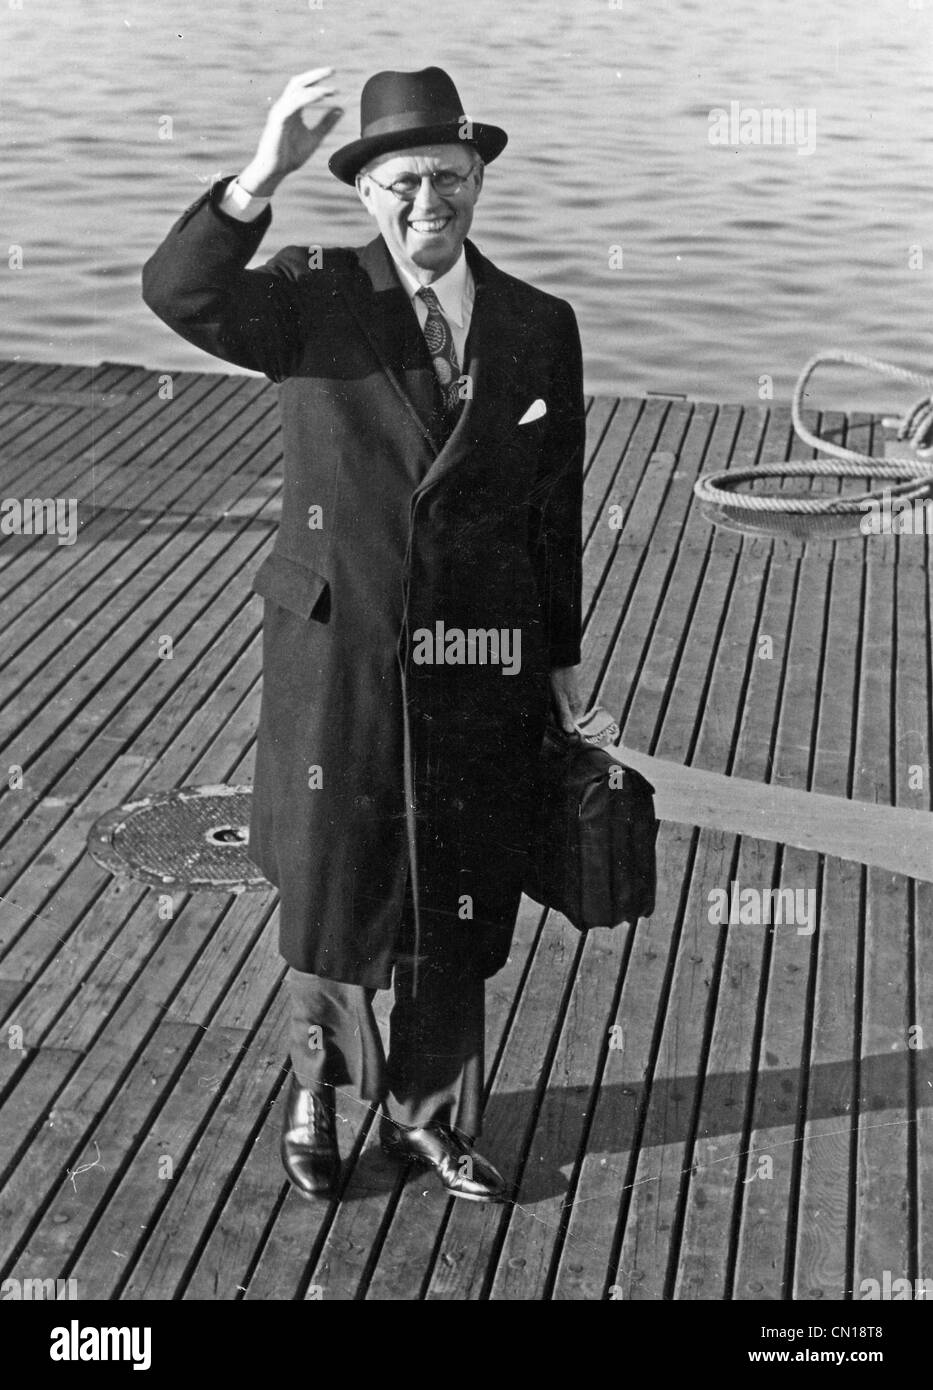 JOSEPH P KENNEDY  (1888-1969) US businessman, father of JFK, here in 1939 as US Ambassador to the UK. - Stock Image